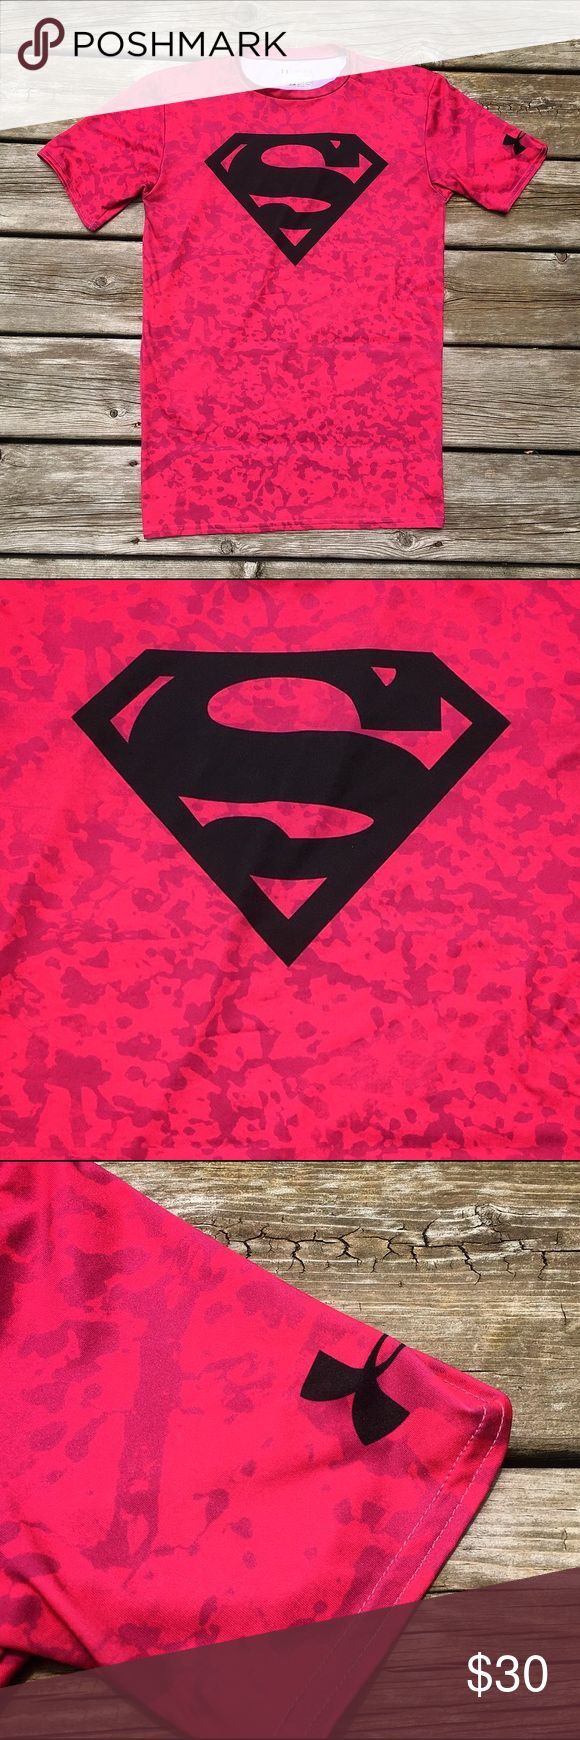 Under Armour Alter Ego Superman Compression Shirt This is a men's short sleeve Under Armour compression shirt. This shirt is a dark pink w/ splotches & is part of their Power in Pink collection. As a part of their Alter Ego collection, this shirt also contains a black Superman logo.   It is composed of HeatGear fabric which allows for increased mobility. This shirt has a moisture transport system, anti-odor technology, and UPF 30+. Wonderful workout shirt to add some color to your wardrobe…